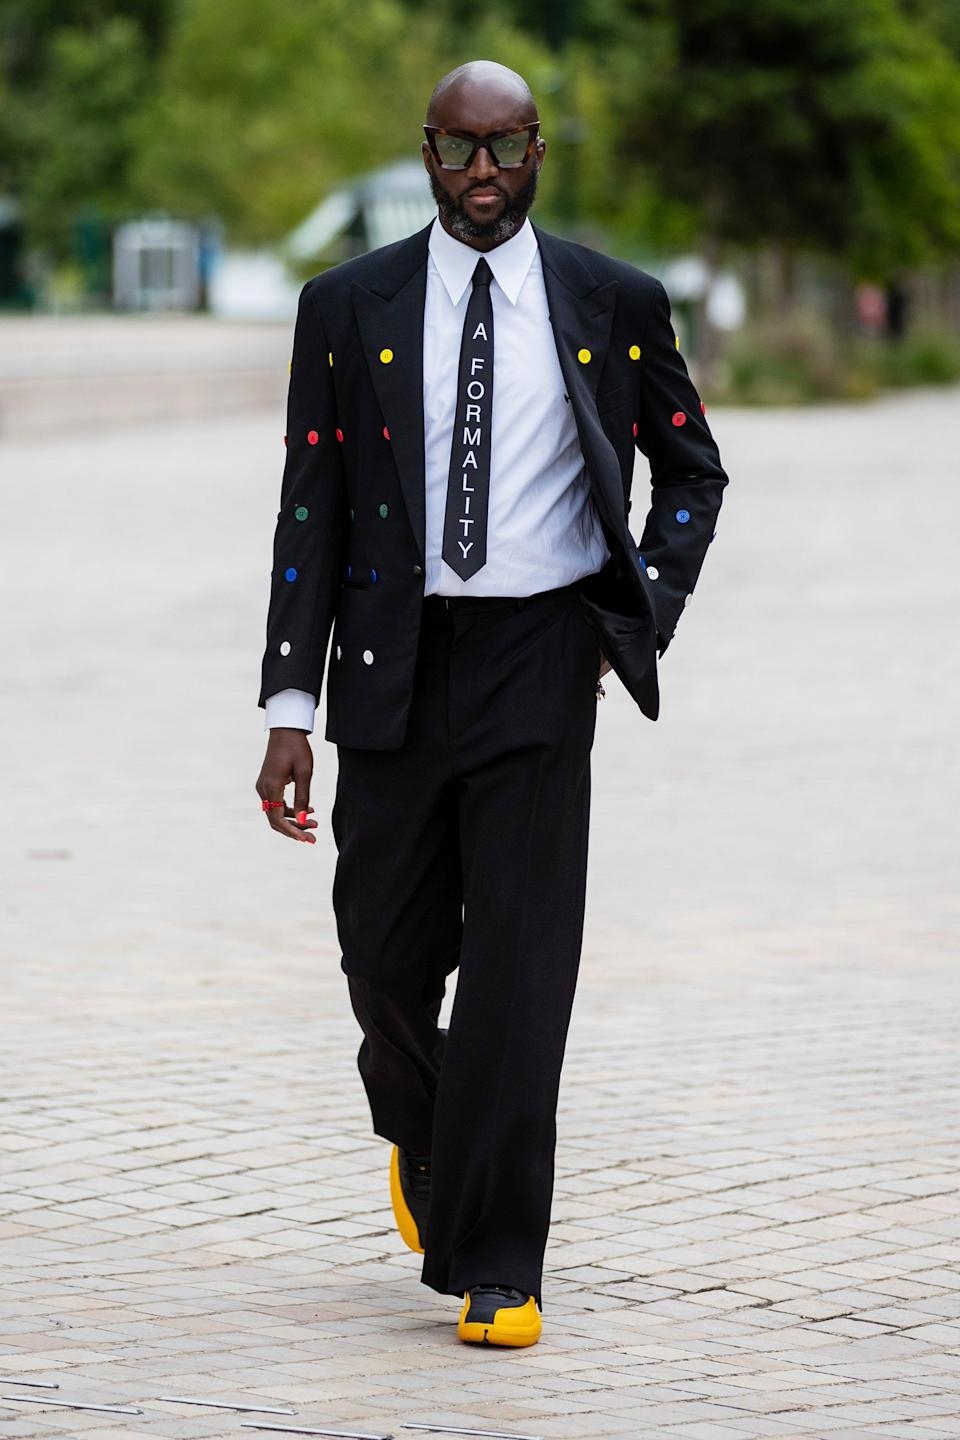 """Off-White designer Virgil Abloh made a black suit look summer-appropriate with a rainbow-hued polka dot print, a tie with """"A Formality"""" emblazoned on it, and colorful shoes. <span class=""""copyright"""">Photo: Christian Vierig/Getty Images.</span>"""